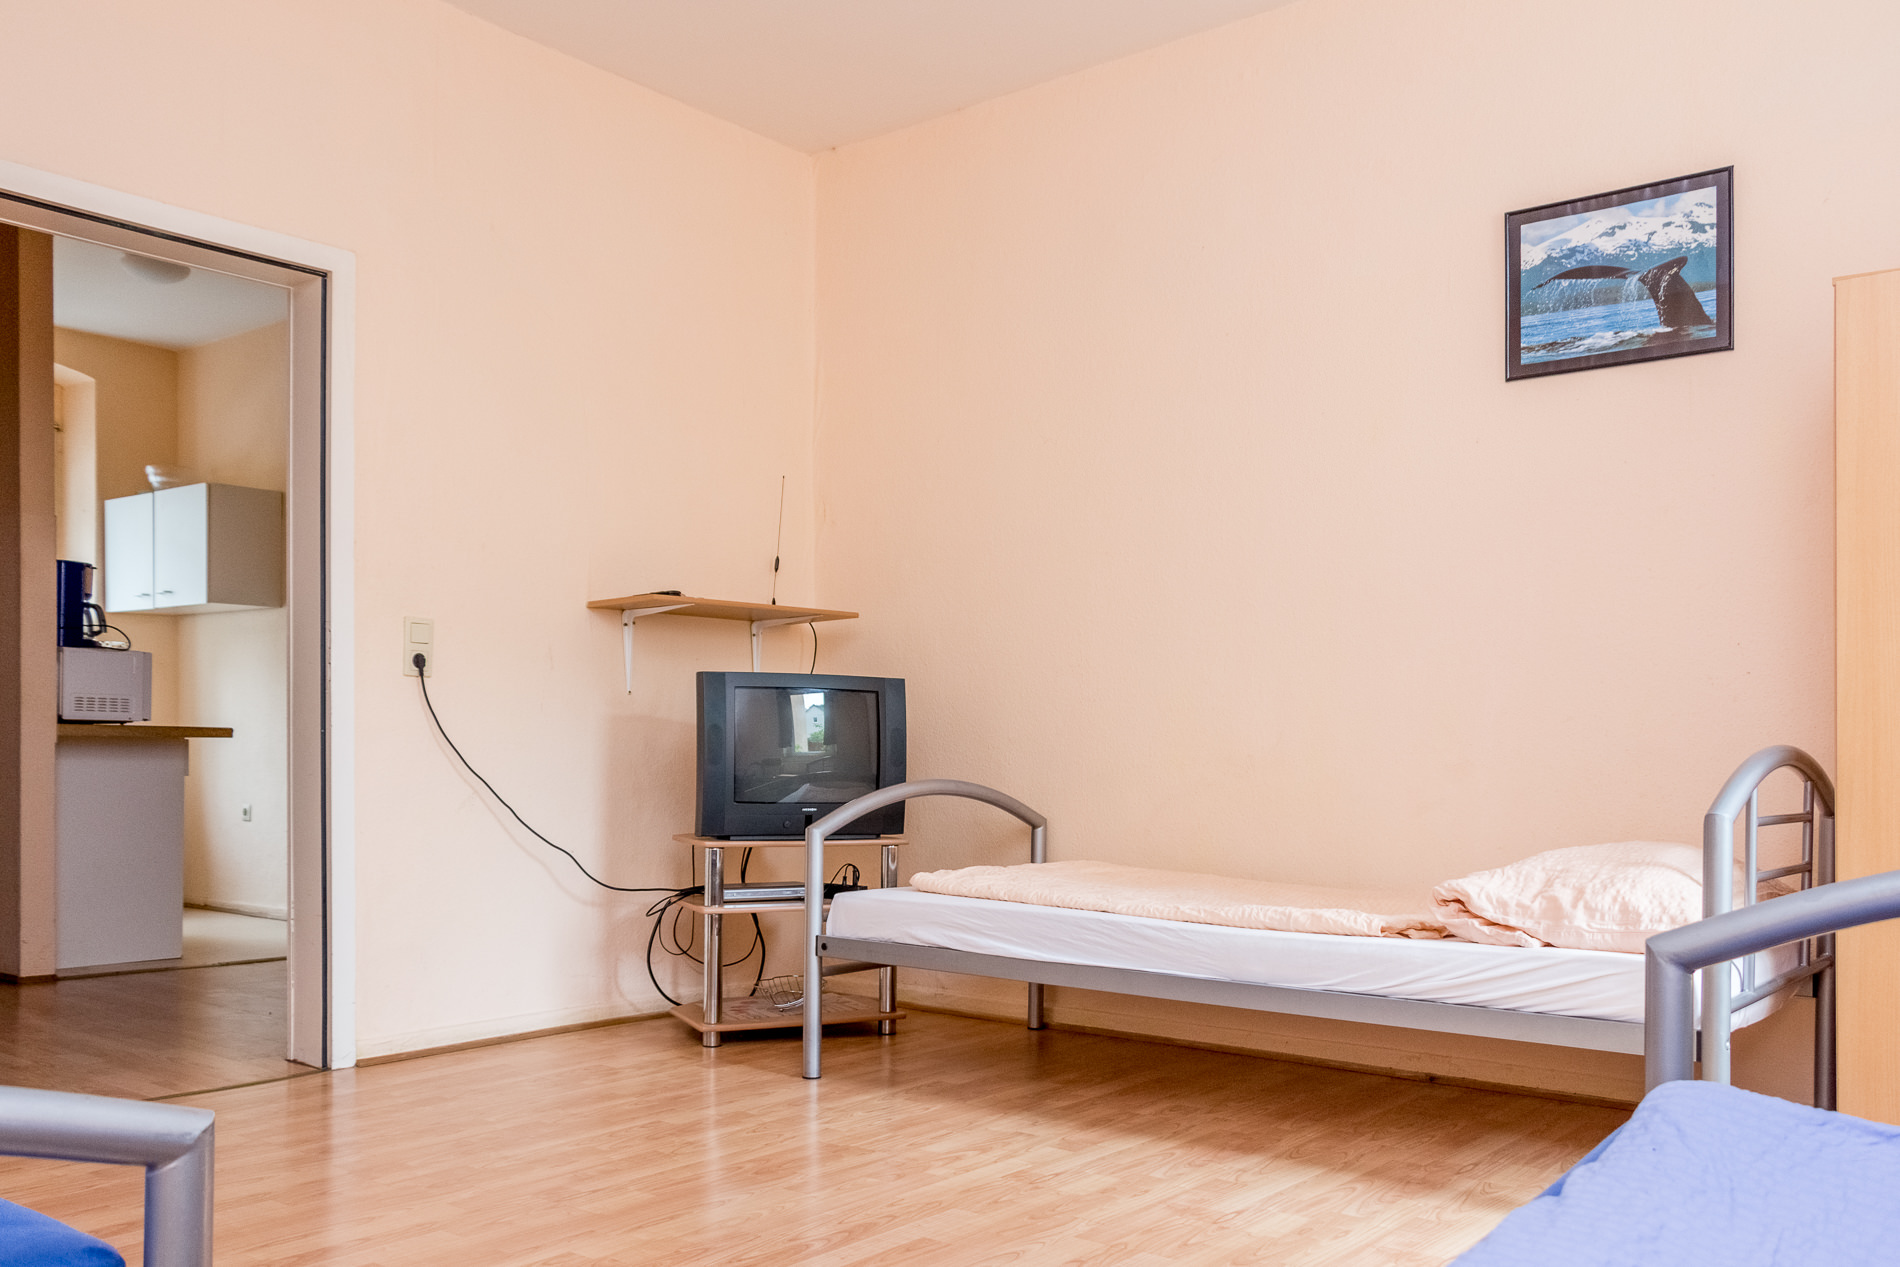 Rooms of our pensions in Dortmund